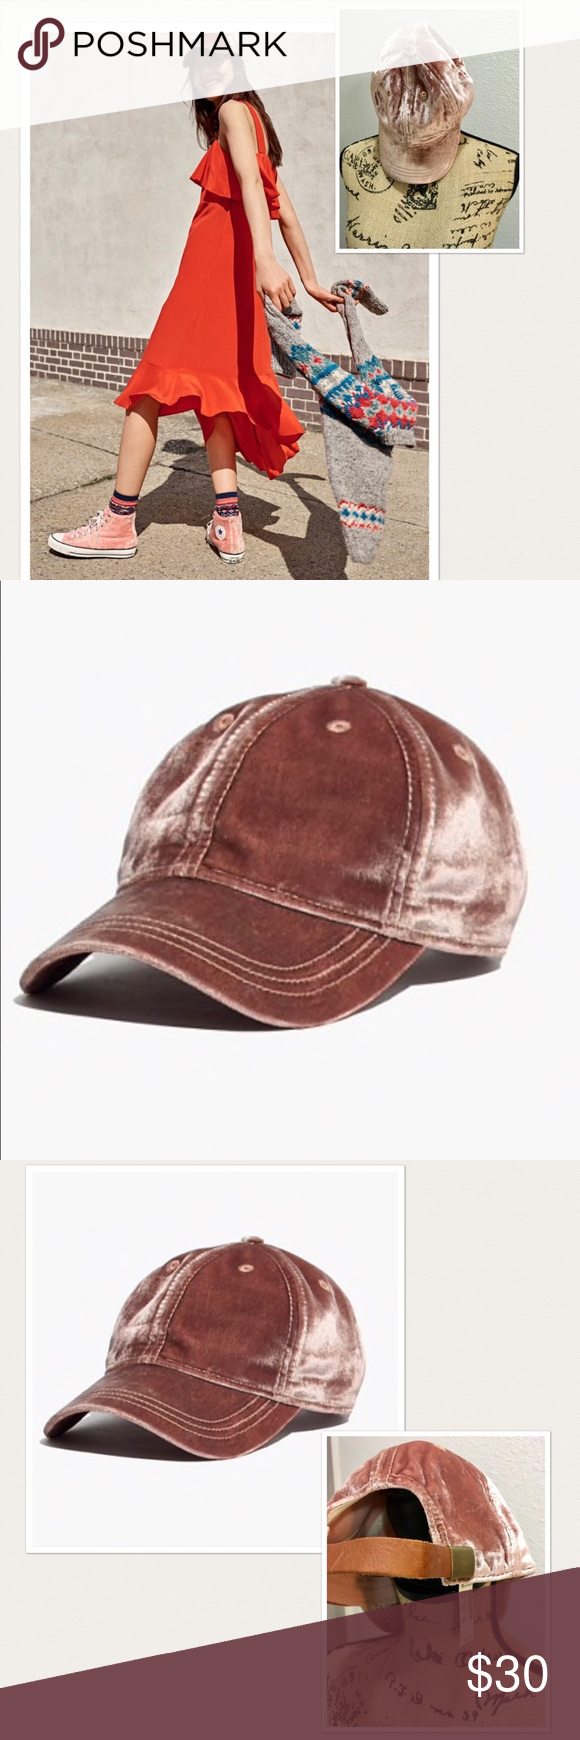 97b0b60c423 🎀Madewell Velvet Baseball Cap🎀 NWT Super sweet pink mauve cap with  leather strap